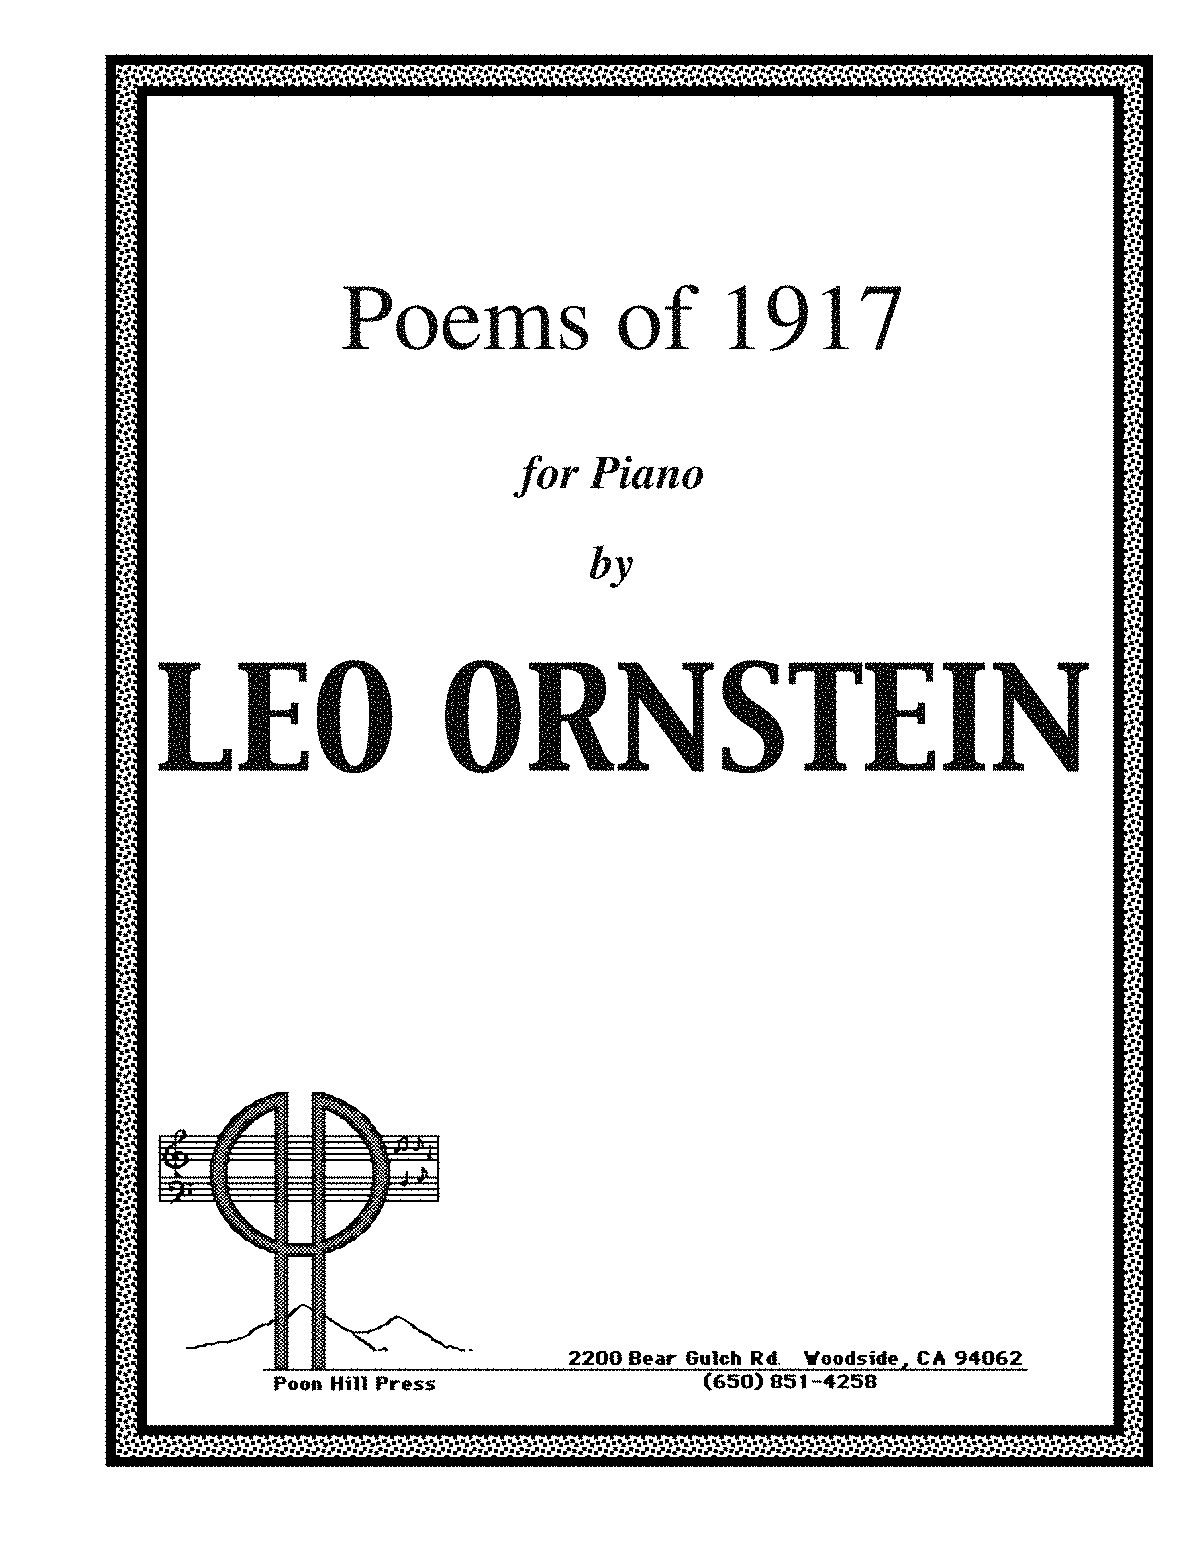 S061a - Poems of 1917.pdf